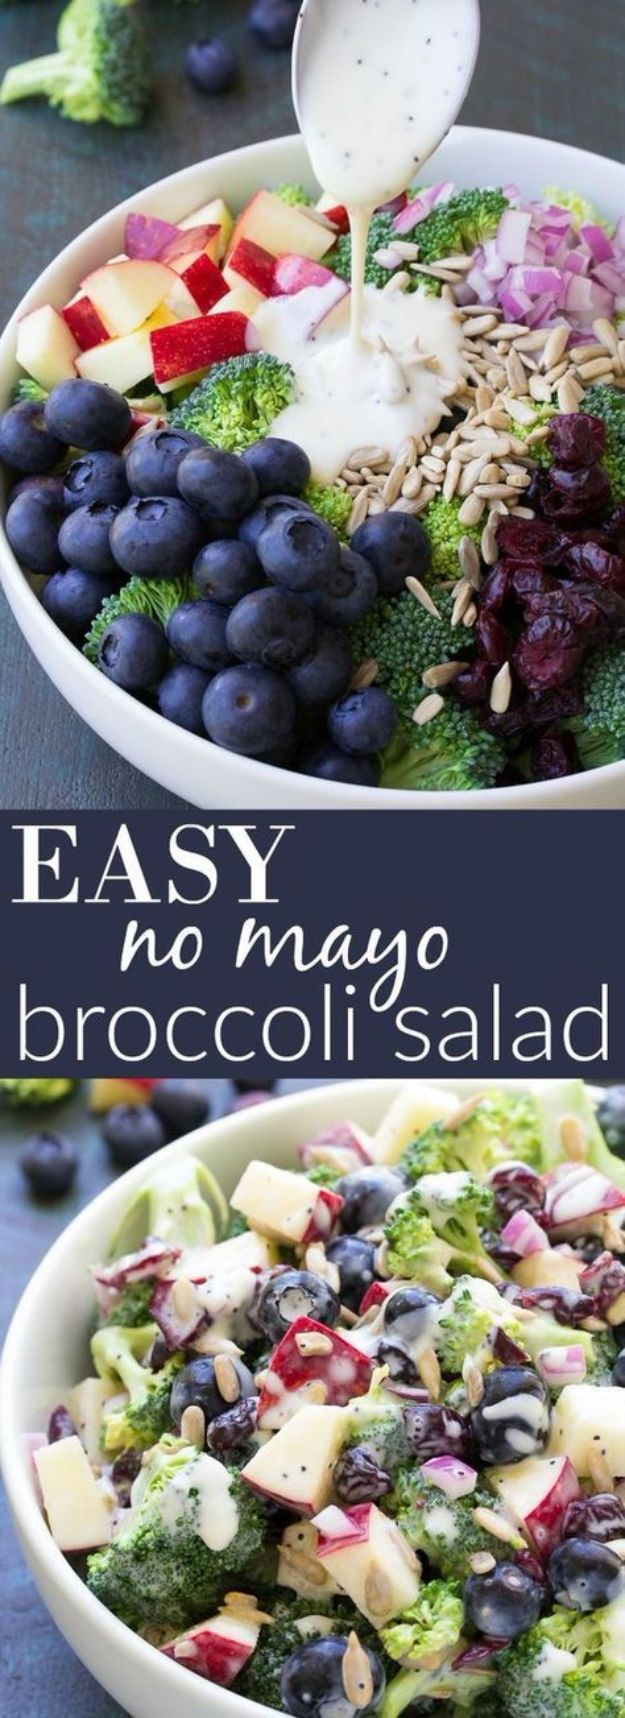 Summer Salad Recipes - No Mayo Broccoli Salad with Blueberries and Apple - Easy Salads to Make for Summer Dinners, Picnic, Barbecue and Take To Work Lunches - Grilled Foods, Fruits, Chicken, Tuna and and Shrimp Salad - Healthy Meals on A Budget - Vegetarian and Vegan Recipe Ideas - Homemade Salad Dressings and Fresh Ingredients make the Best Salads #salads #saladrecipes #lunchrecipes #recipes #summer http://diyjoy.com/summer-salad-recipes